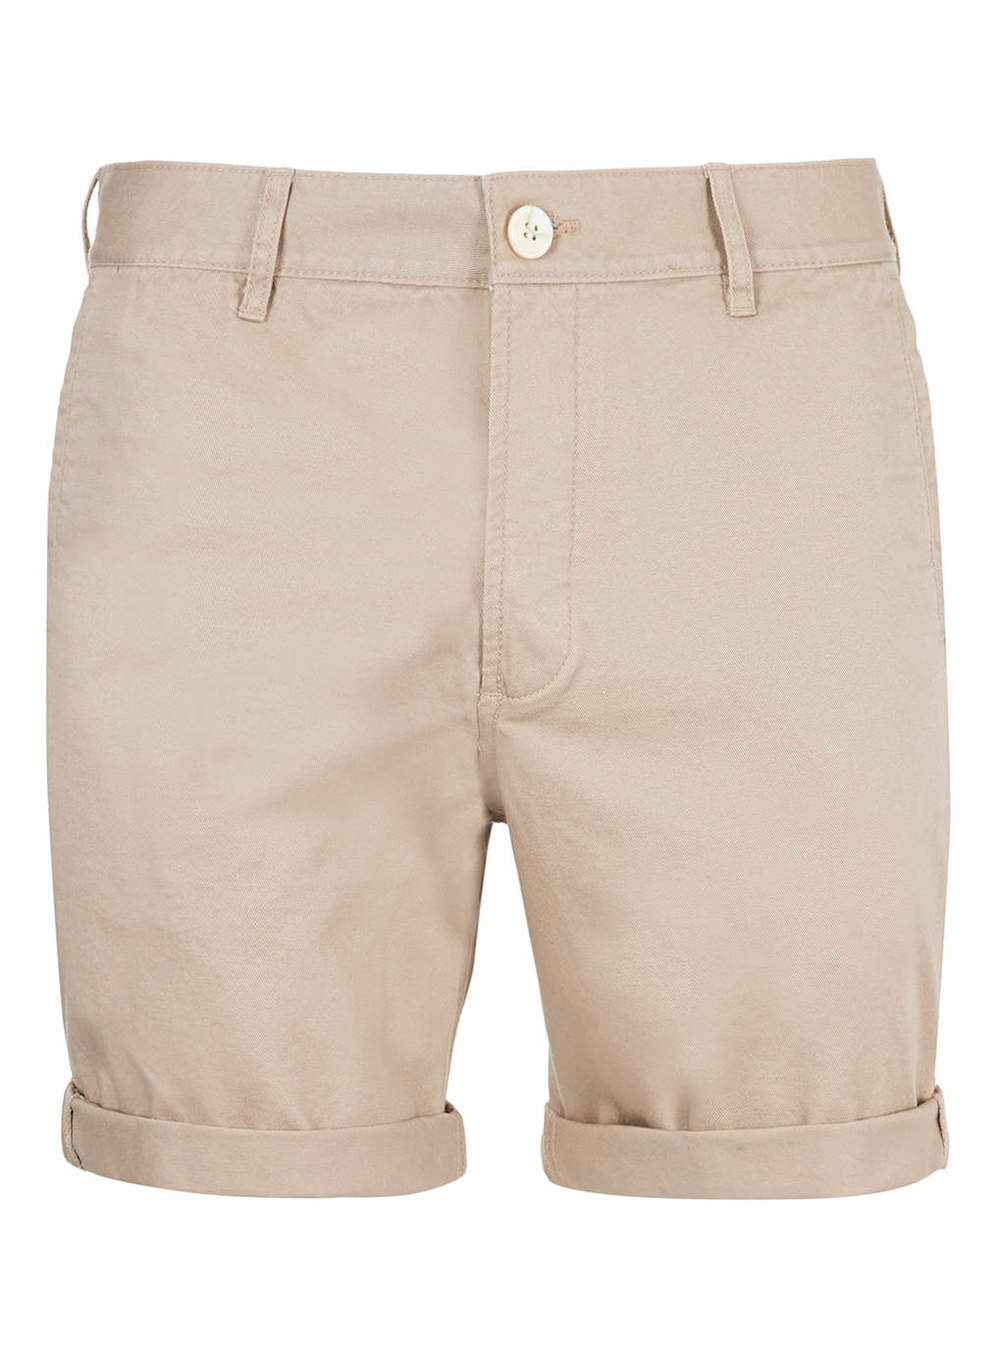 Stone Chino Shorts, $45... it's the shorts version of my pants!